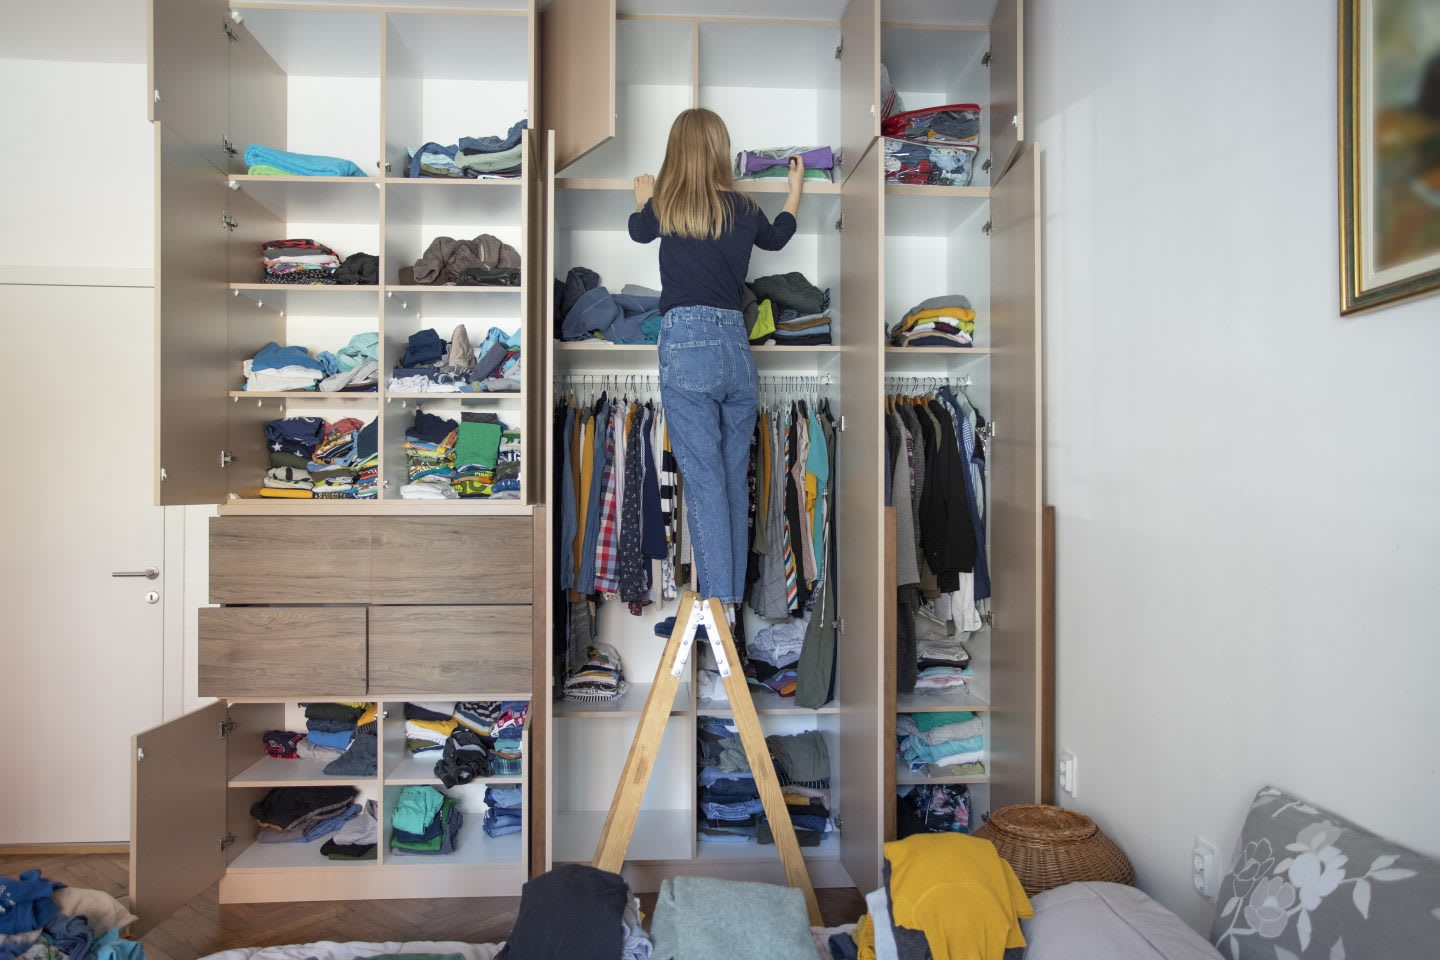 Young woman cleans up the mess in the closet, tidy, organization, clothes, wardrobe, closet, woman